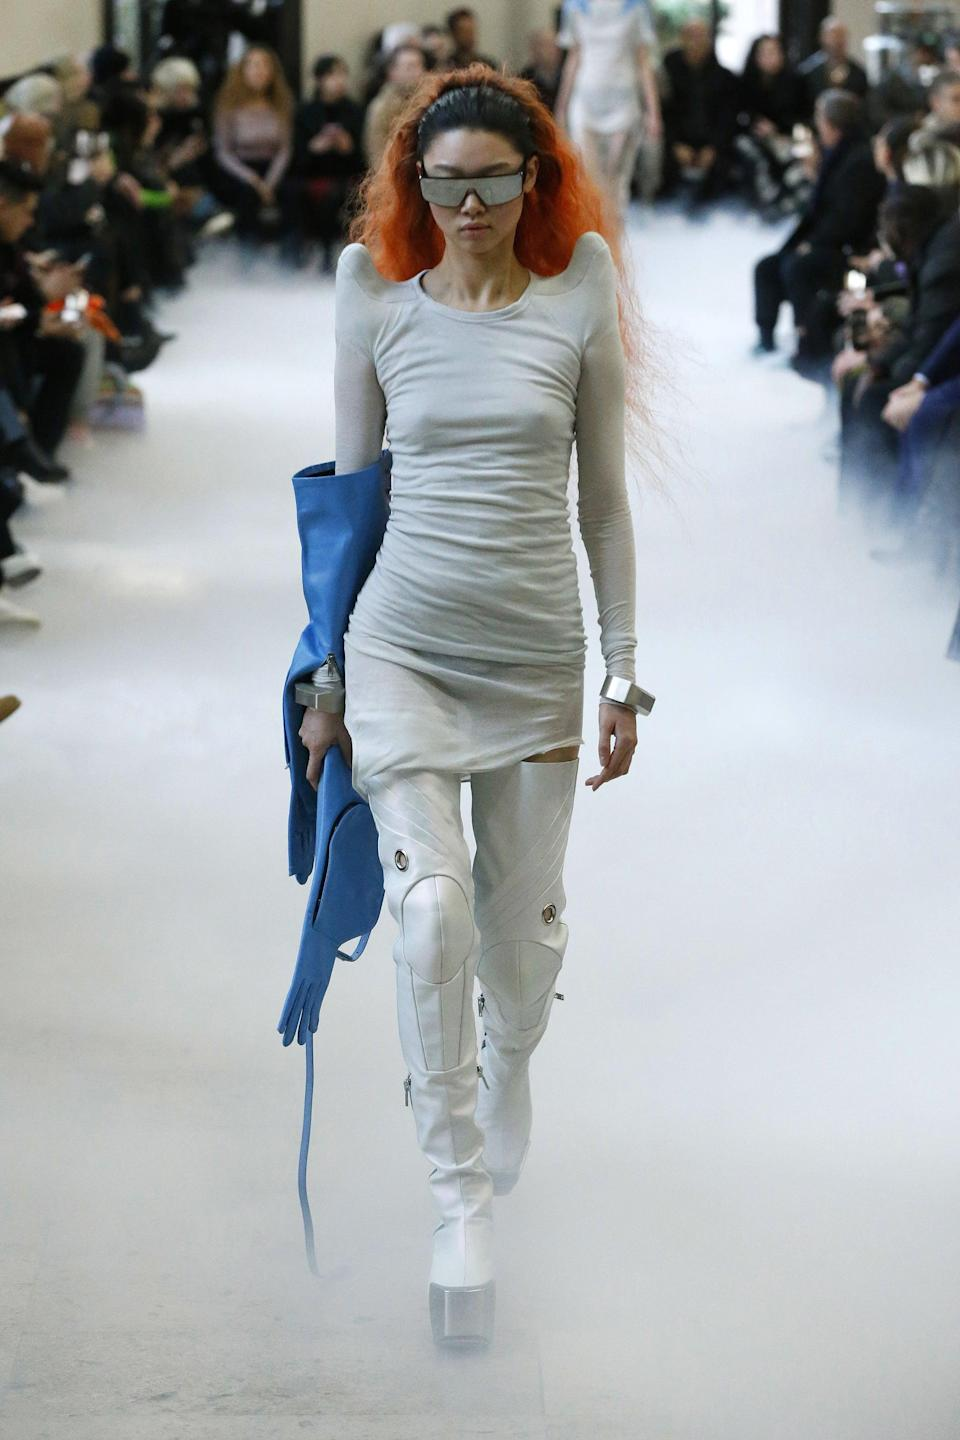 <p>Futuristic fashion is in, and Rick Owens is paving the way. If pronounced shoulders and platform boots aren't your thing, fear not. You can still channel the look with metallic fabrics (foiled is even better) and mirrored sunglasses.</p>